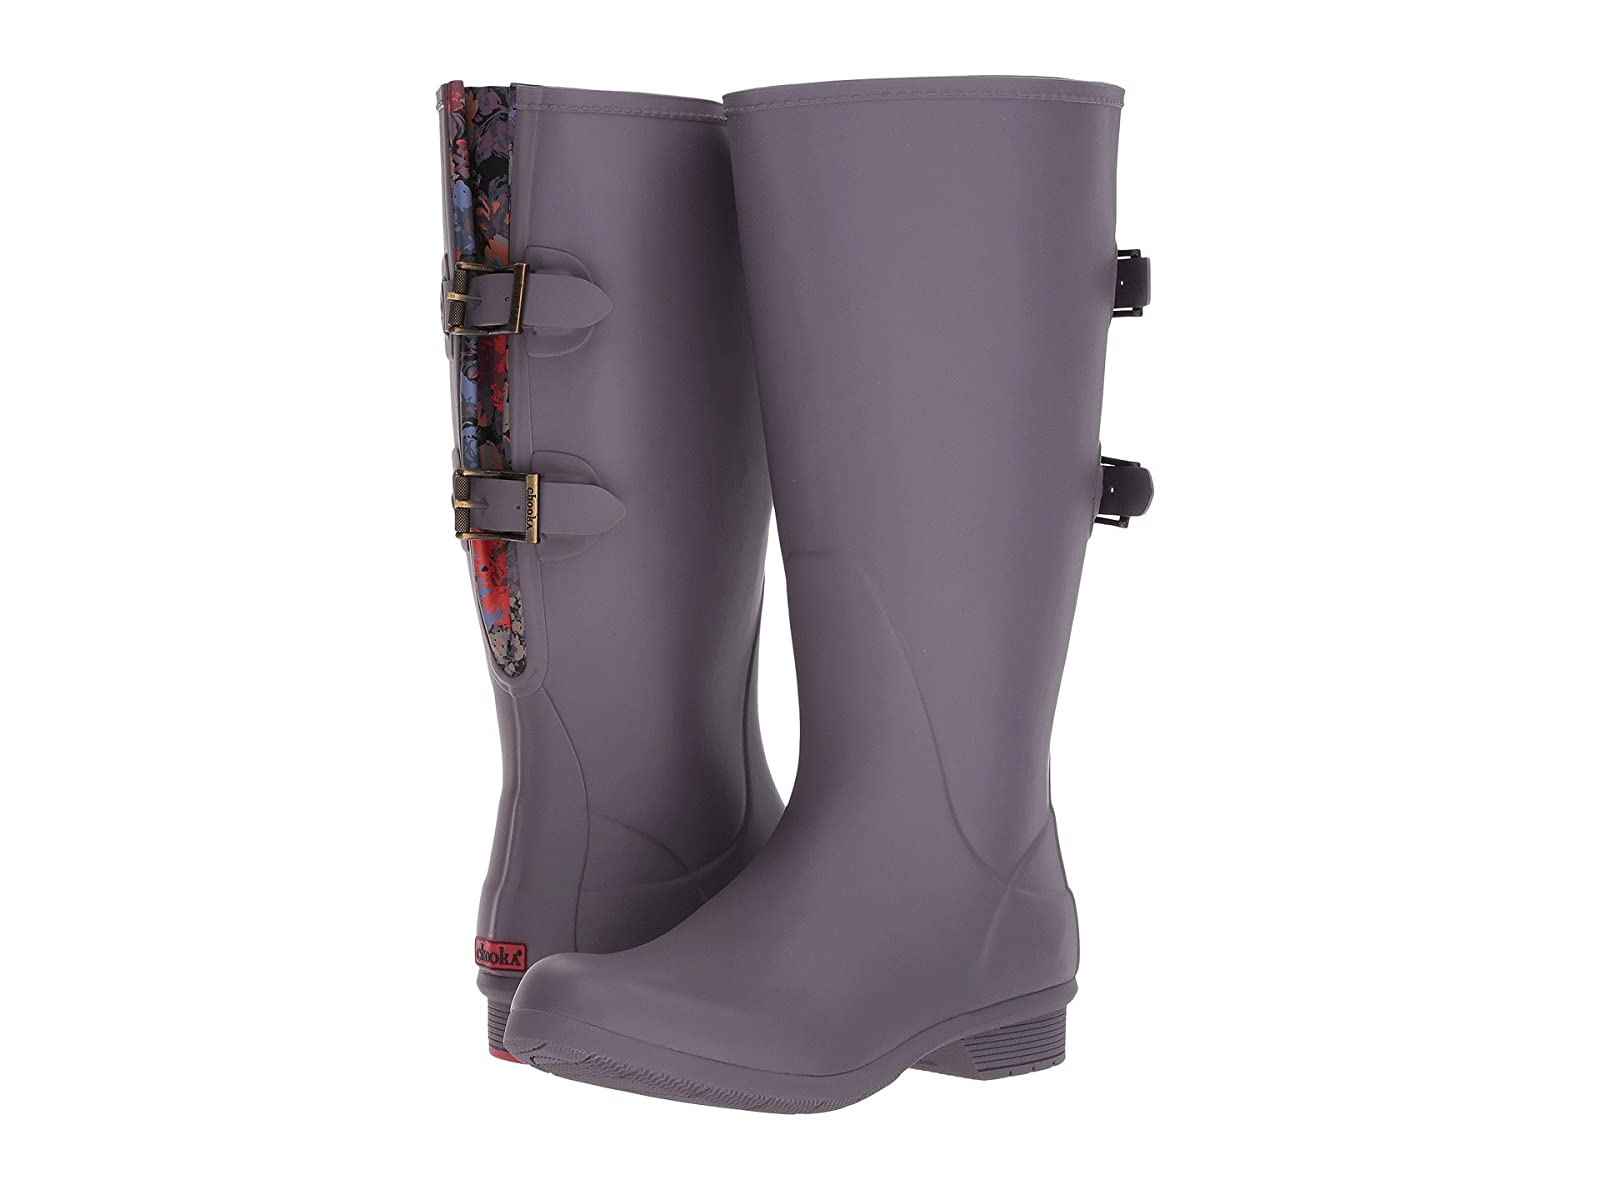 Chooka Versa Prima Wide Calf Tall BootSelling fashionable and eye-catching shoes